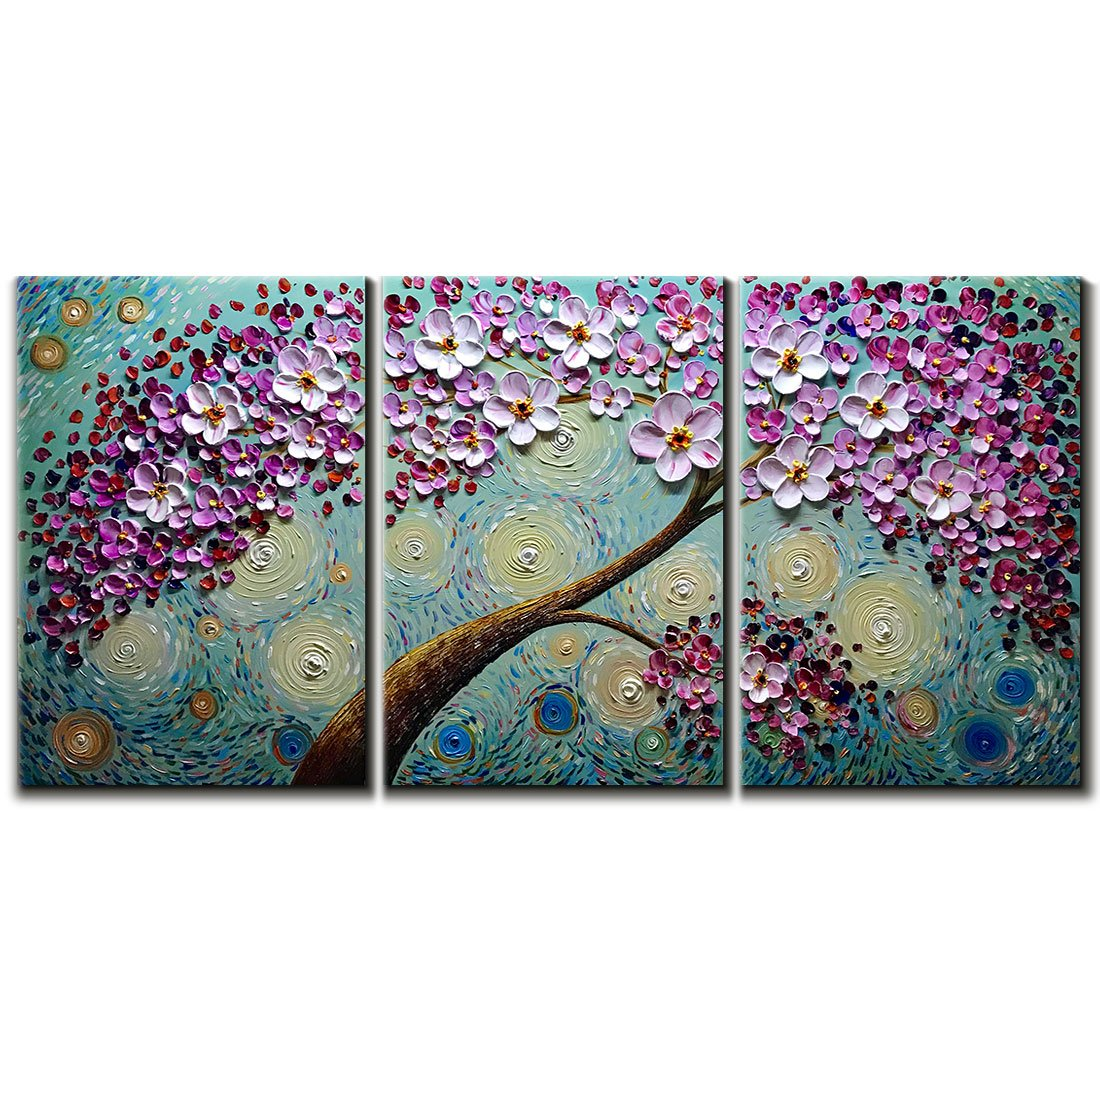 Hand-painted Oil Painting, V-inspire Blooming life Abstract 3D Hand-Painted Modern Home Decoration Abstract Artwork Art 3 Panels Wood Inside Framed Hanging 16x24Inchx3 by V-inspire